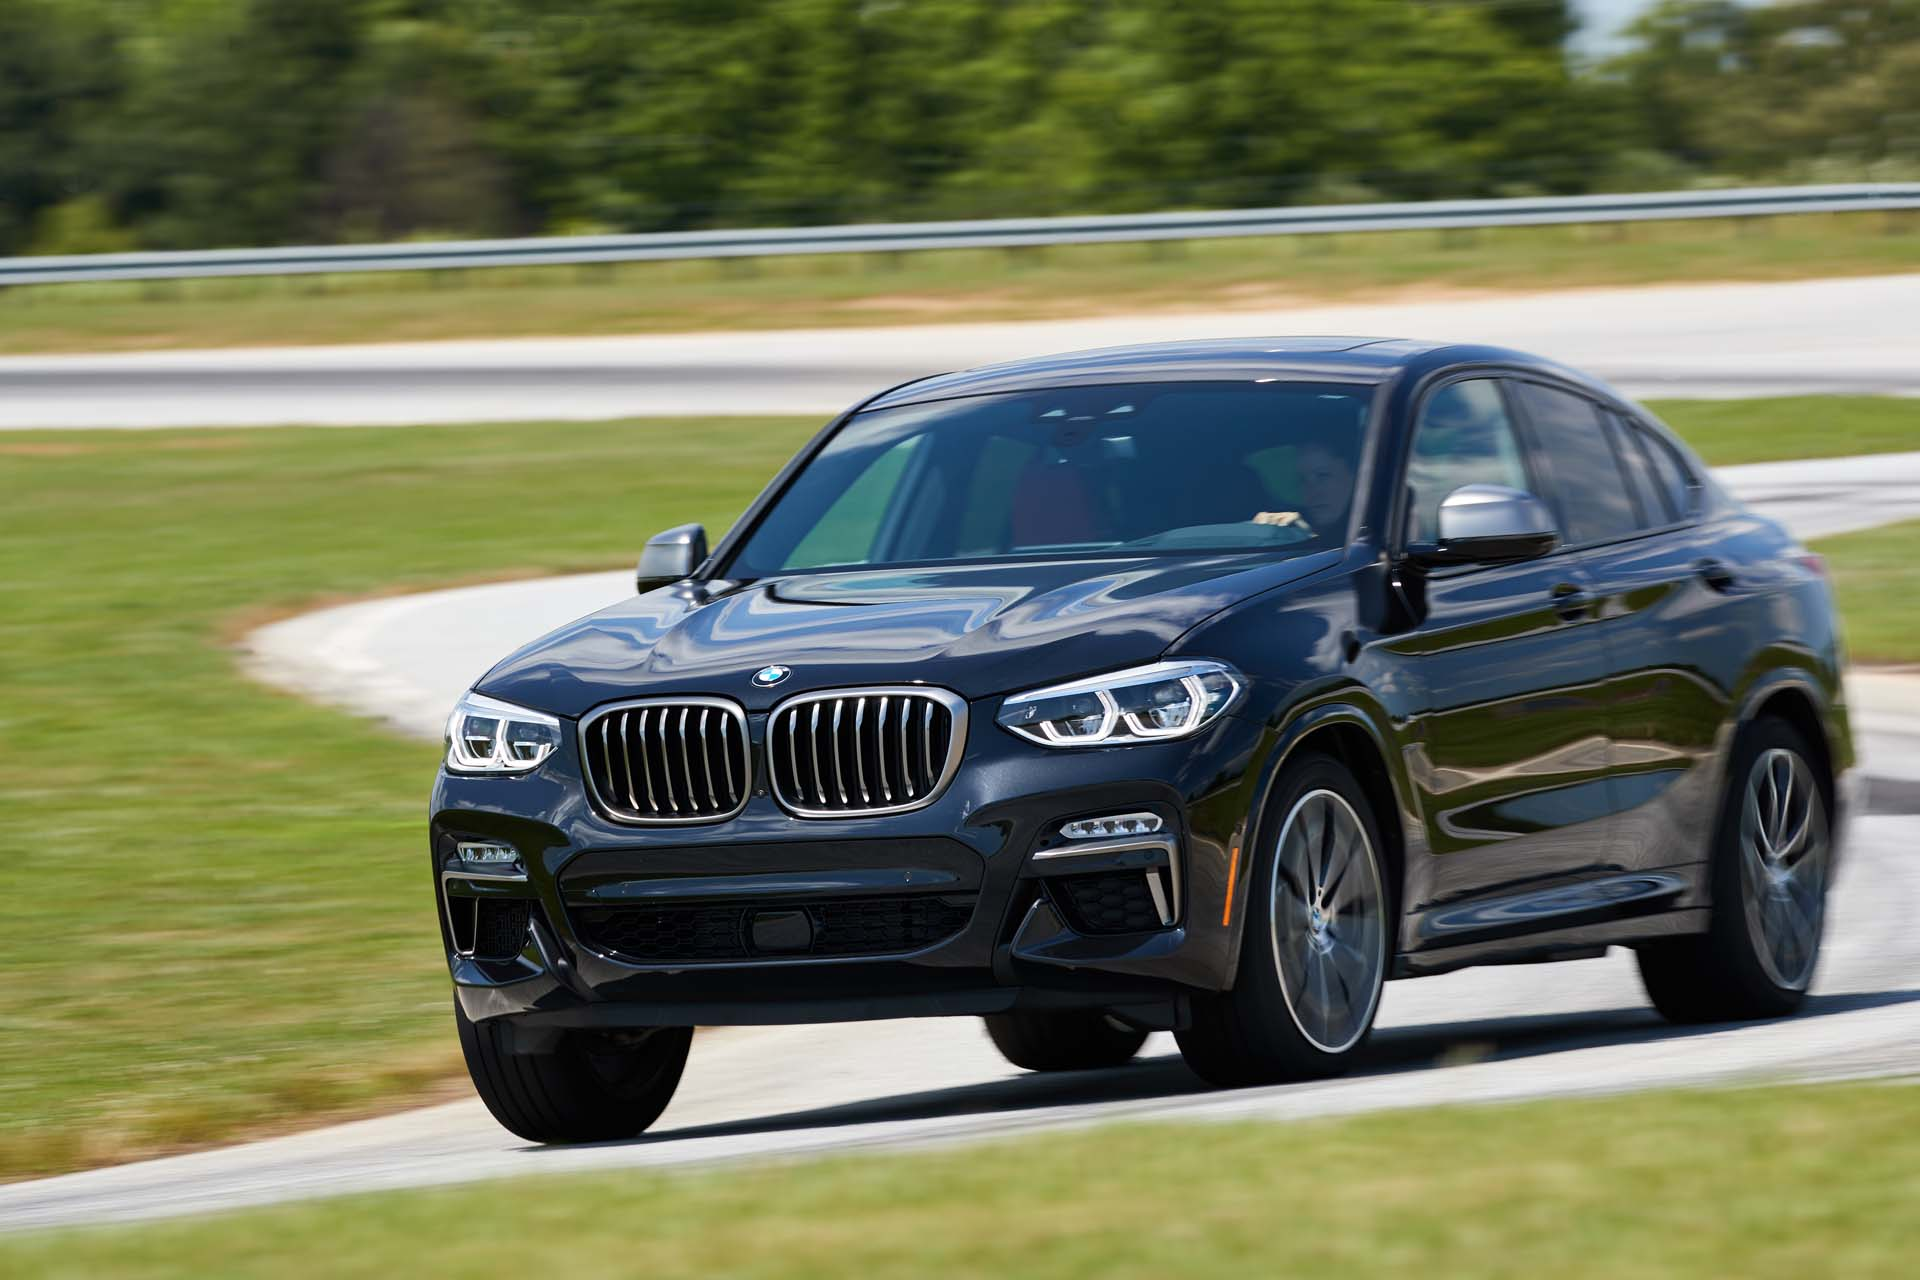 2019 Bmw X4 M40i First Drive Review The Evolving Suv Coupe